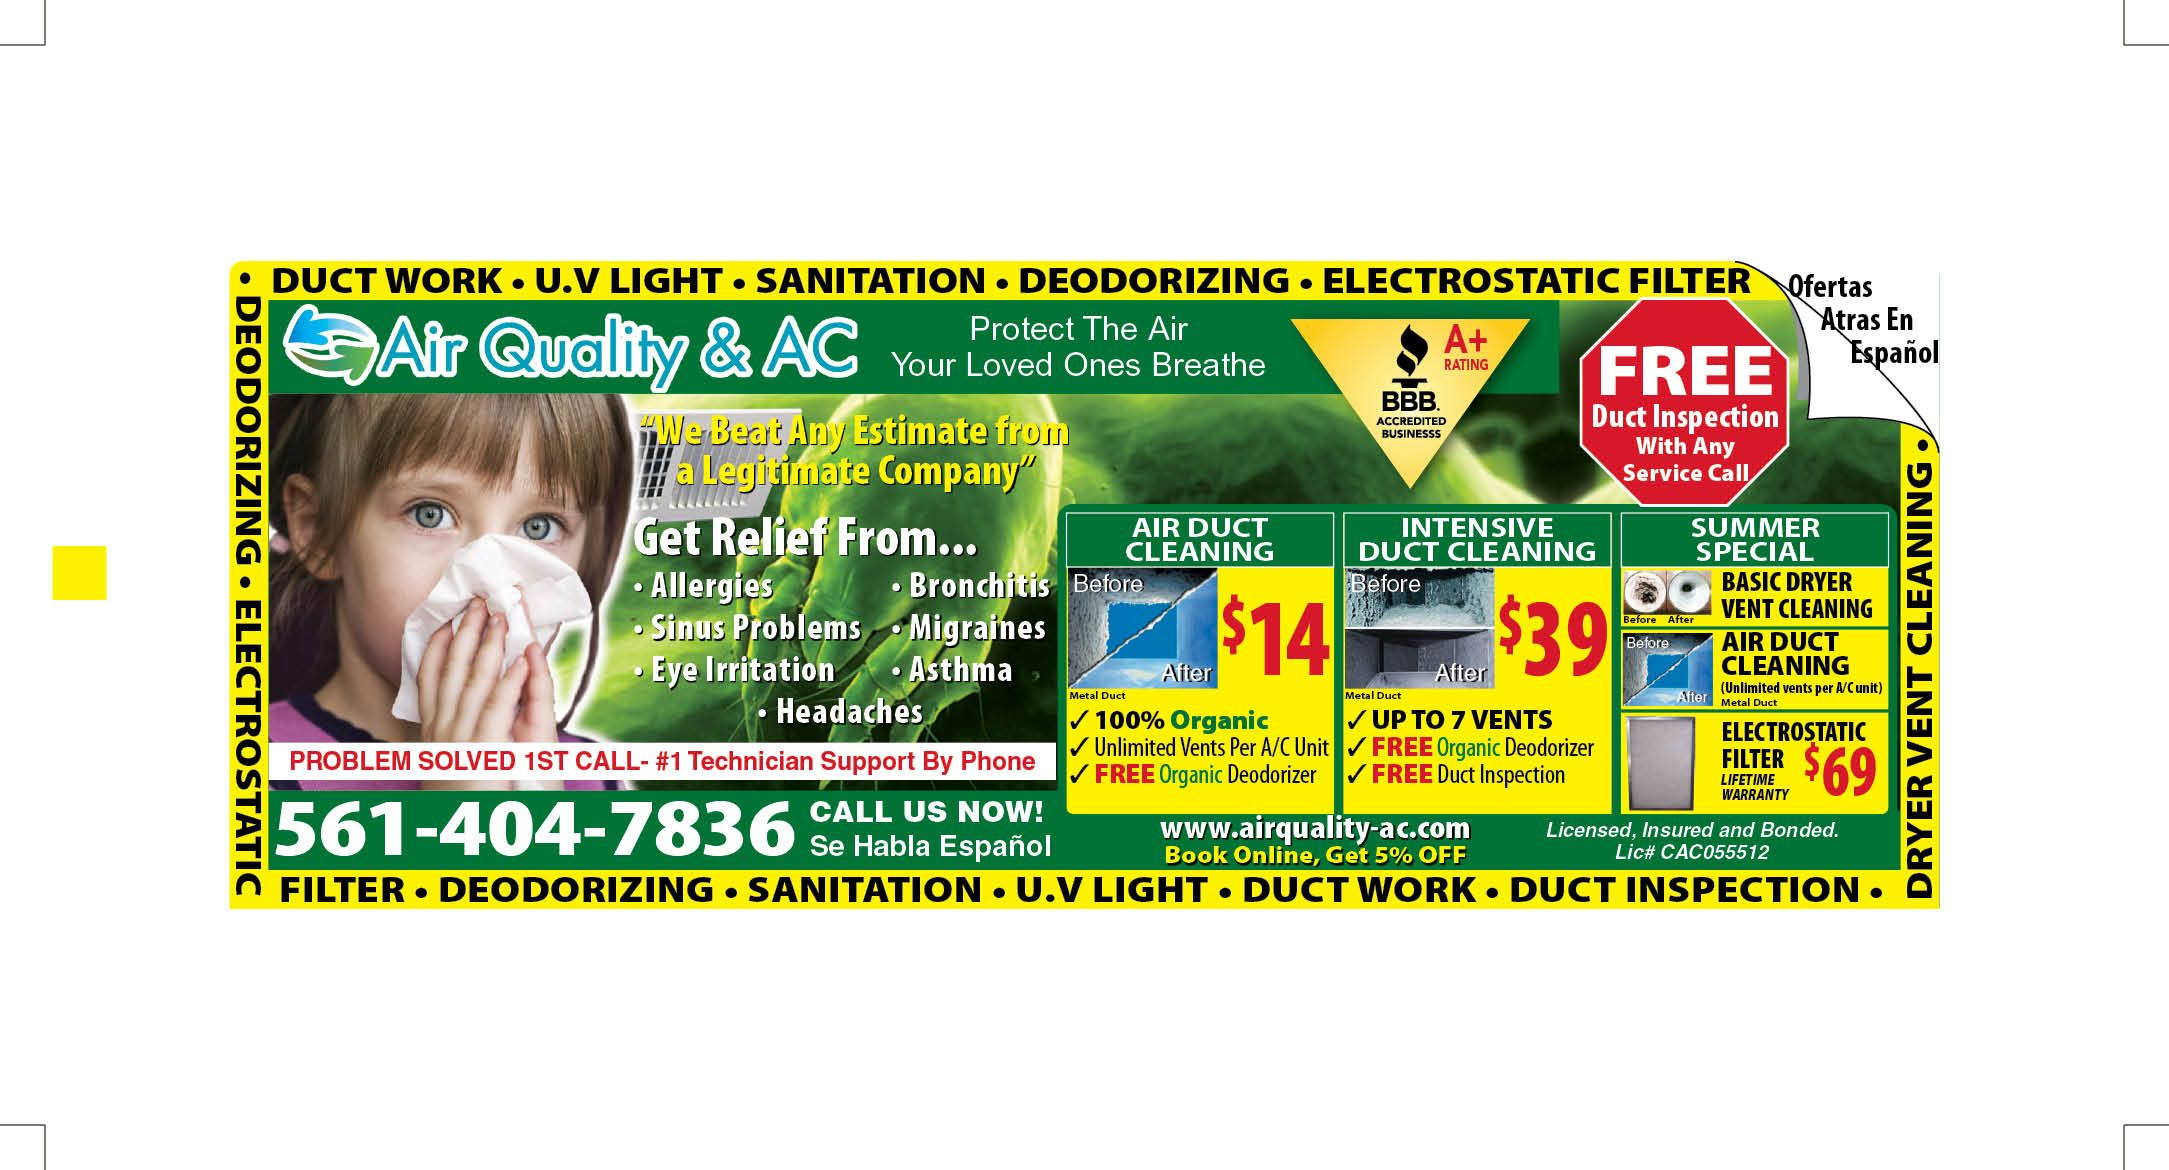 Air duct cleaning Valpak ad featuring several coupons for